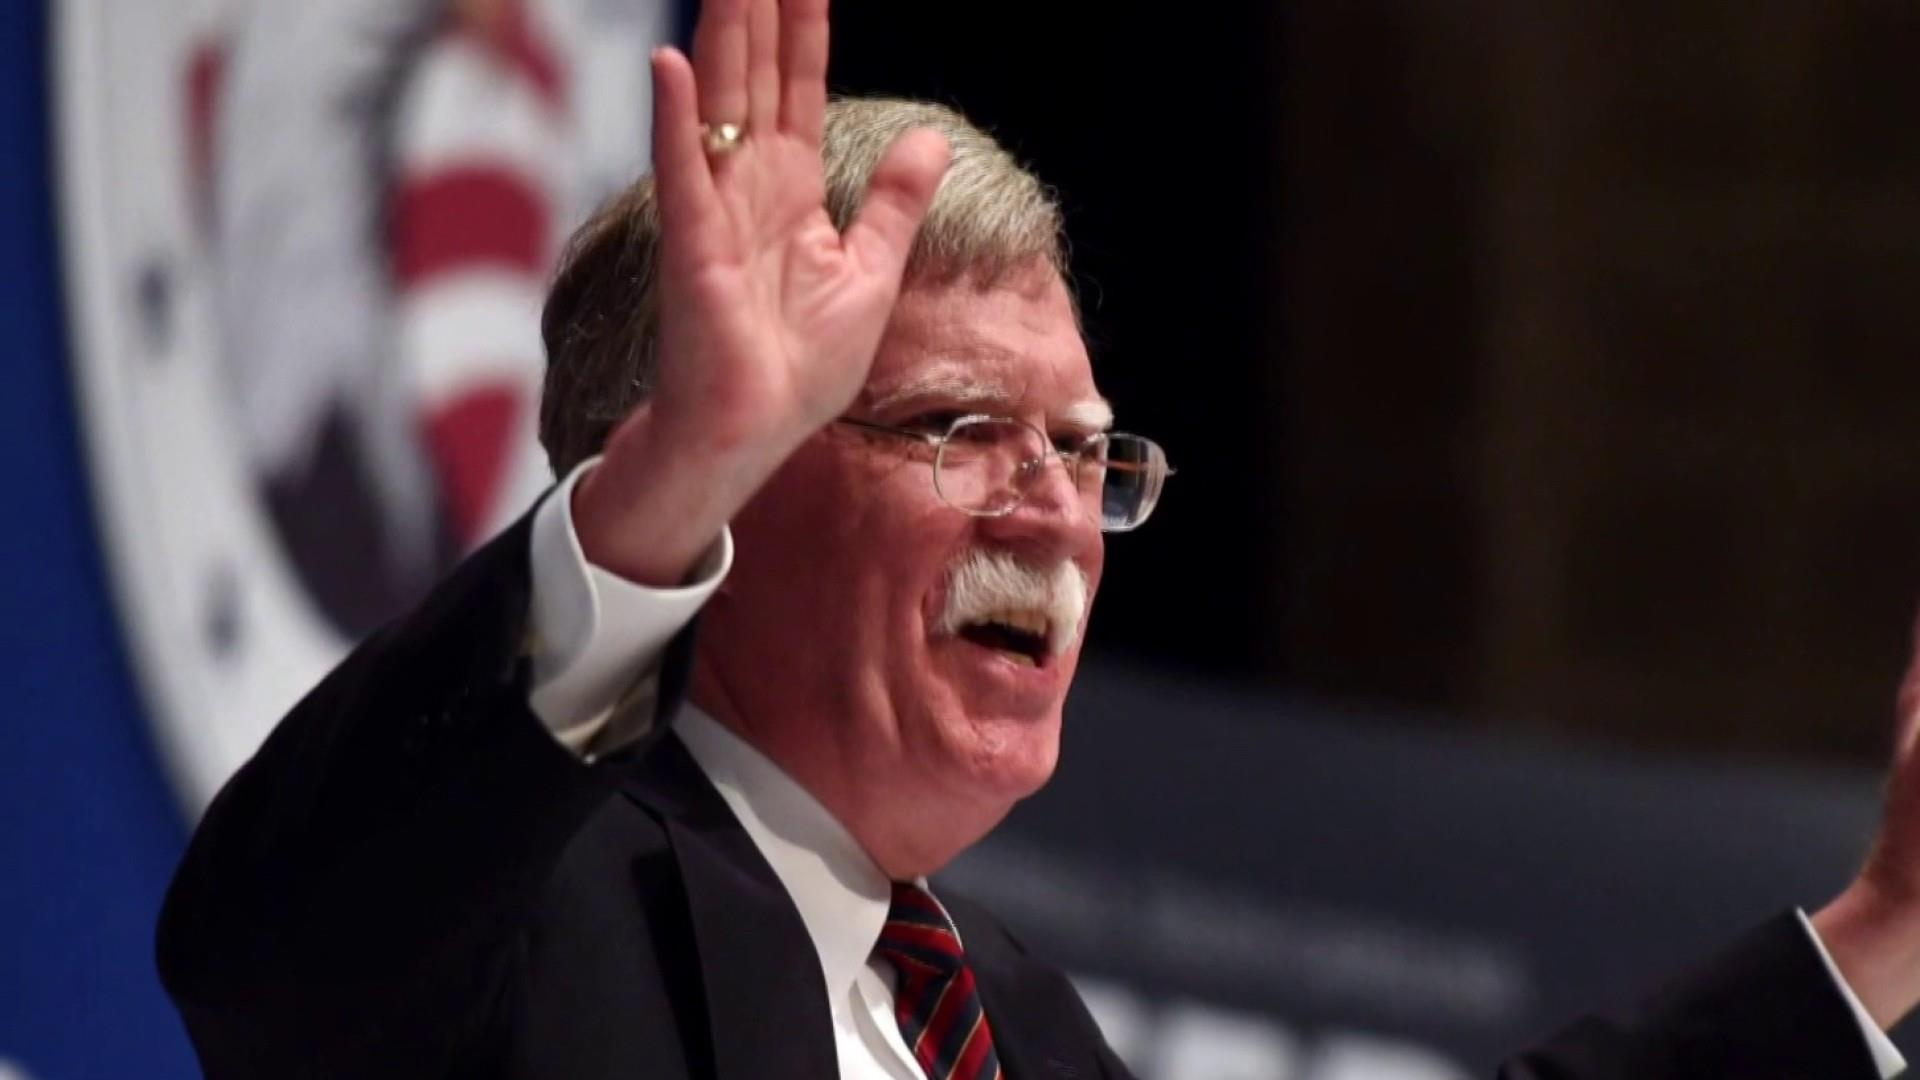 With Bolton, Trump assembles a 'war cabinet'